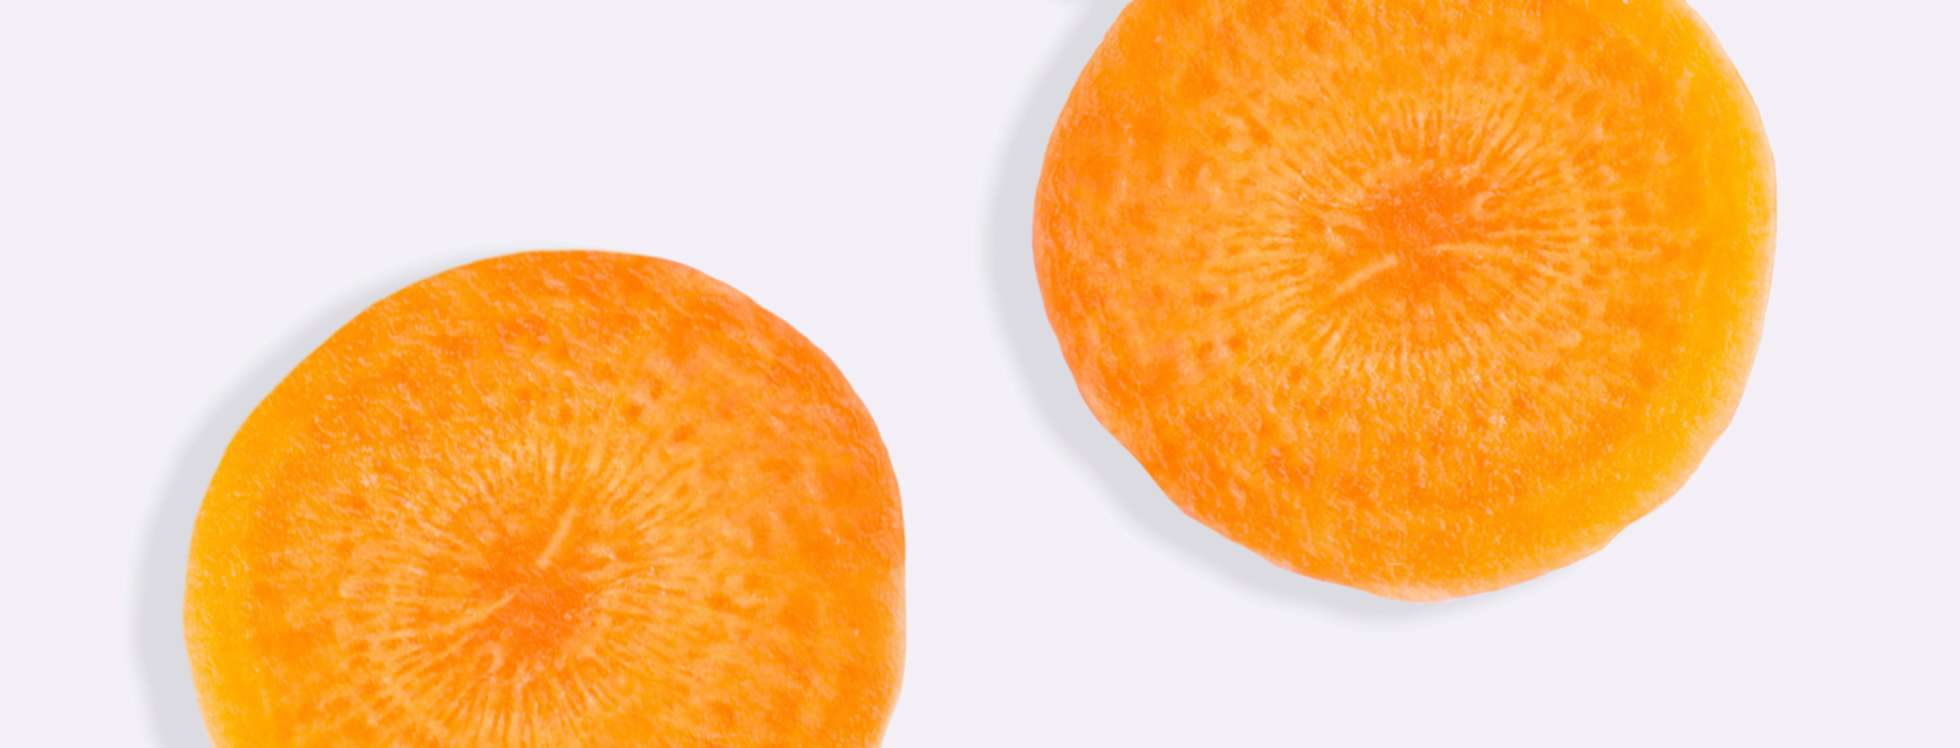 Cross section of orange carrot on grey background